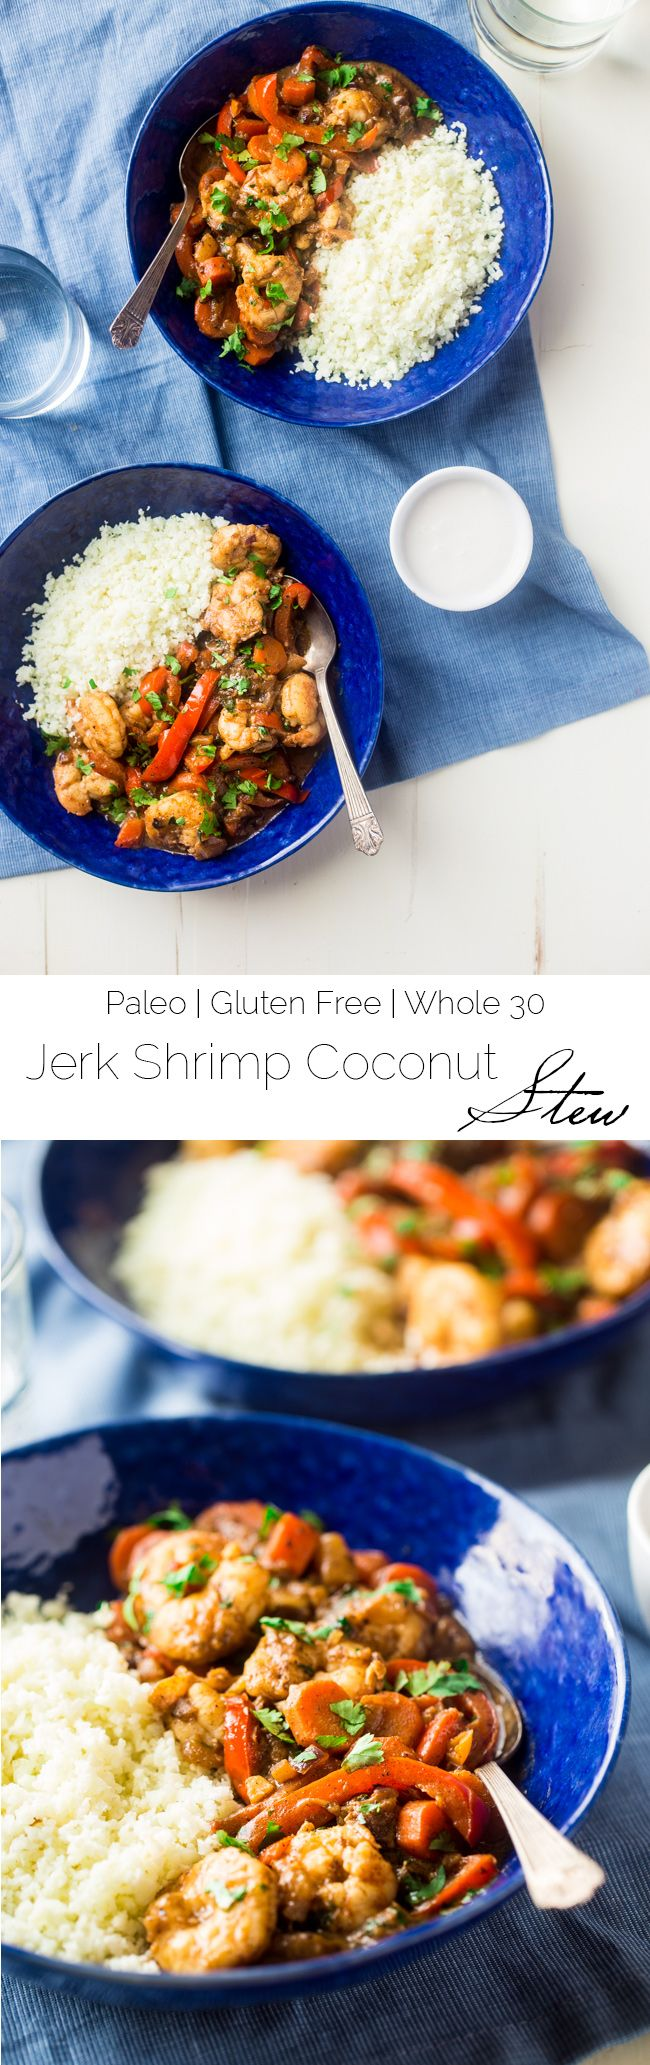 Whole 30 Jerk Shrimp Stew with Cauliflower Rice - This creamy stew uses coconut milk, pineapples and bold flavors for a healthy, 30 minute weeknight meal that is paleo friendly and whole 30 compliant! | Foodfaithfitness.com #jerkshrimp